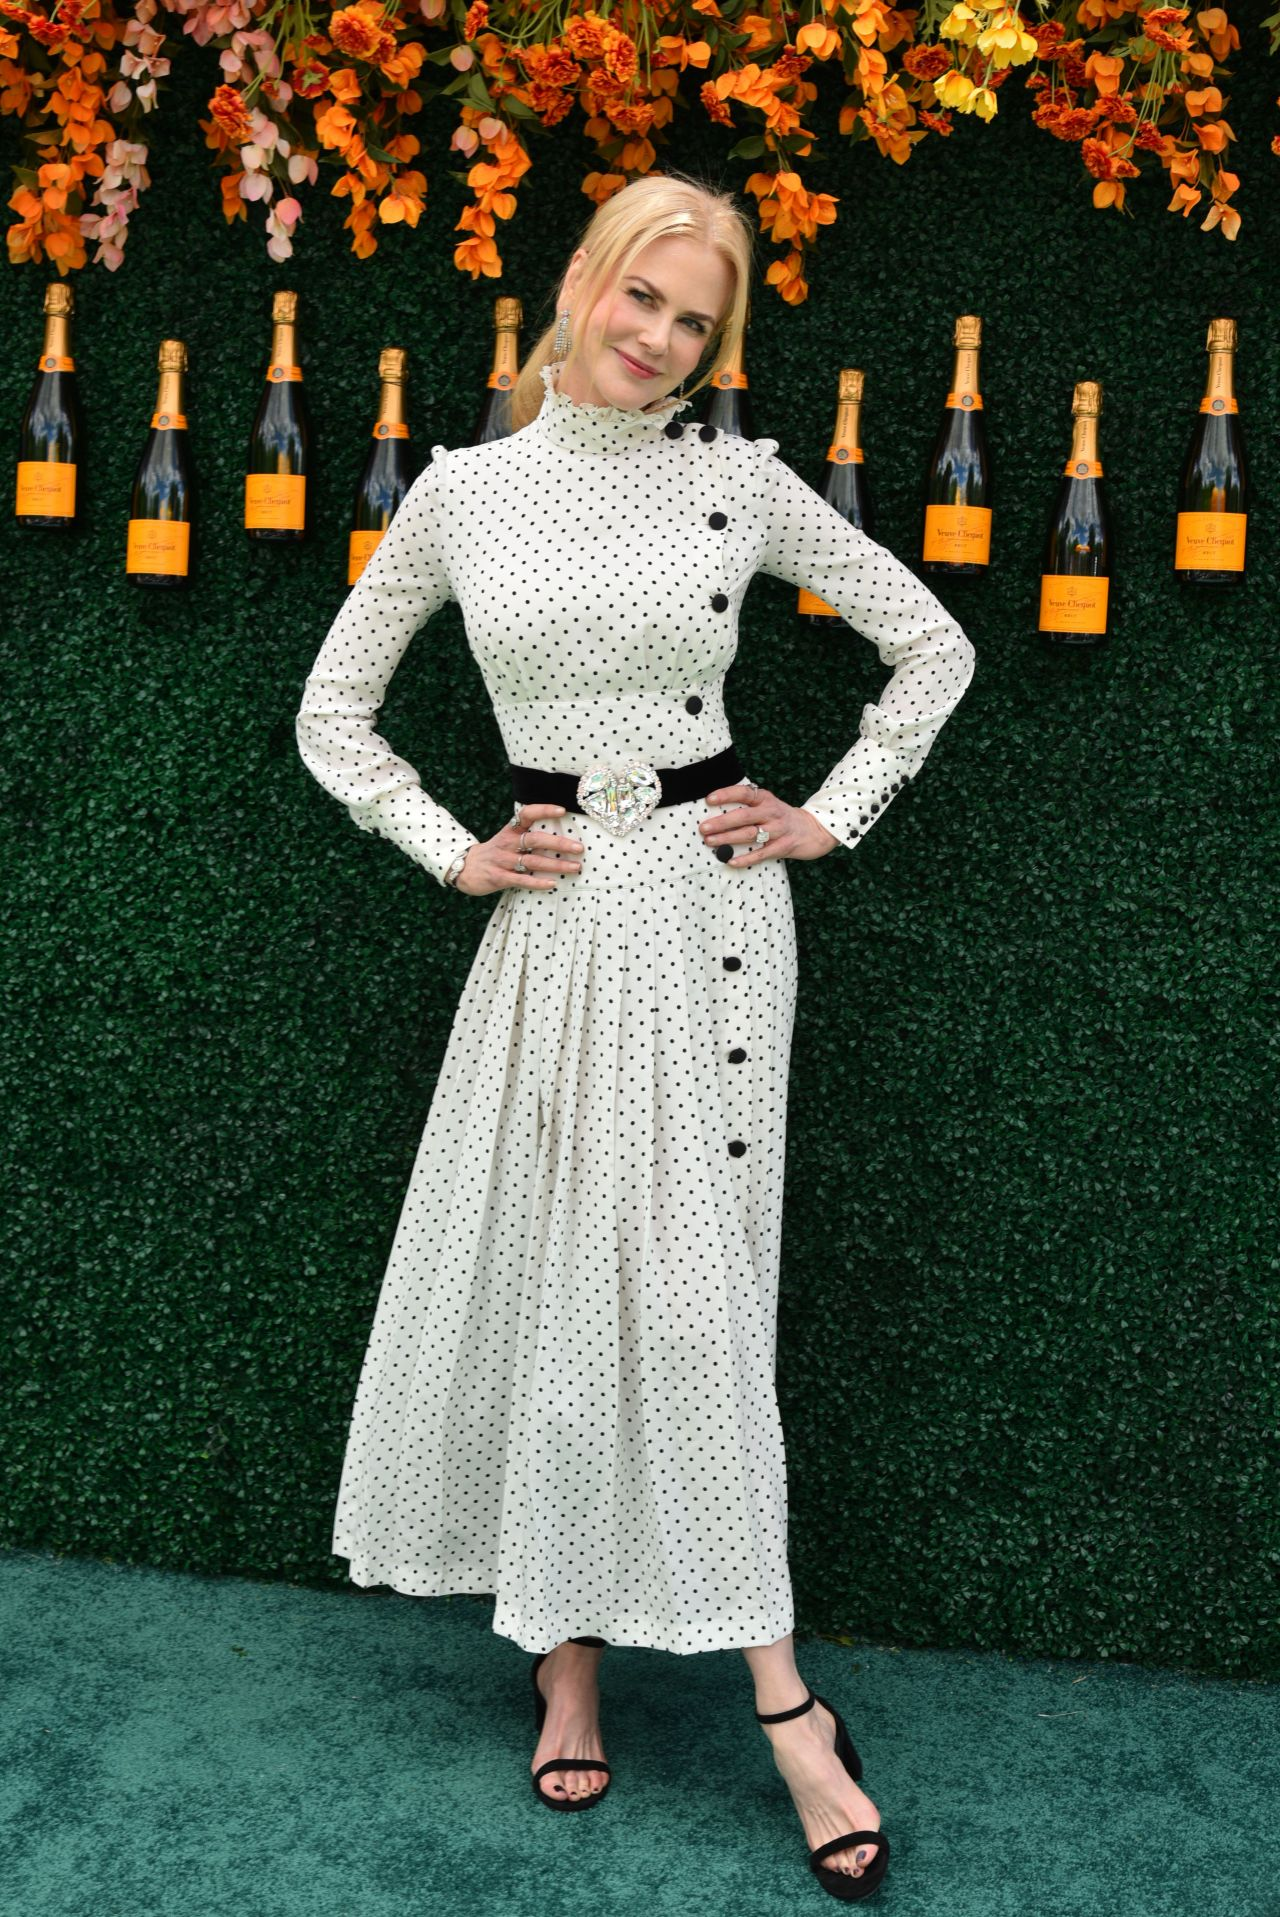 Image result for Tenth Annual Veuve Clicquot Polo Classic nicole kidman